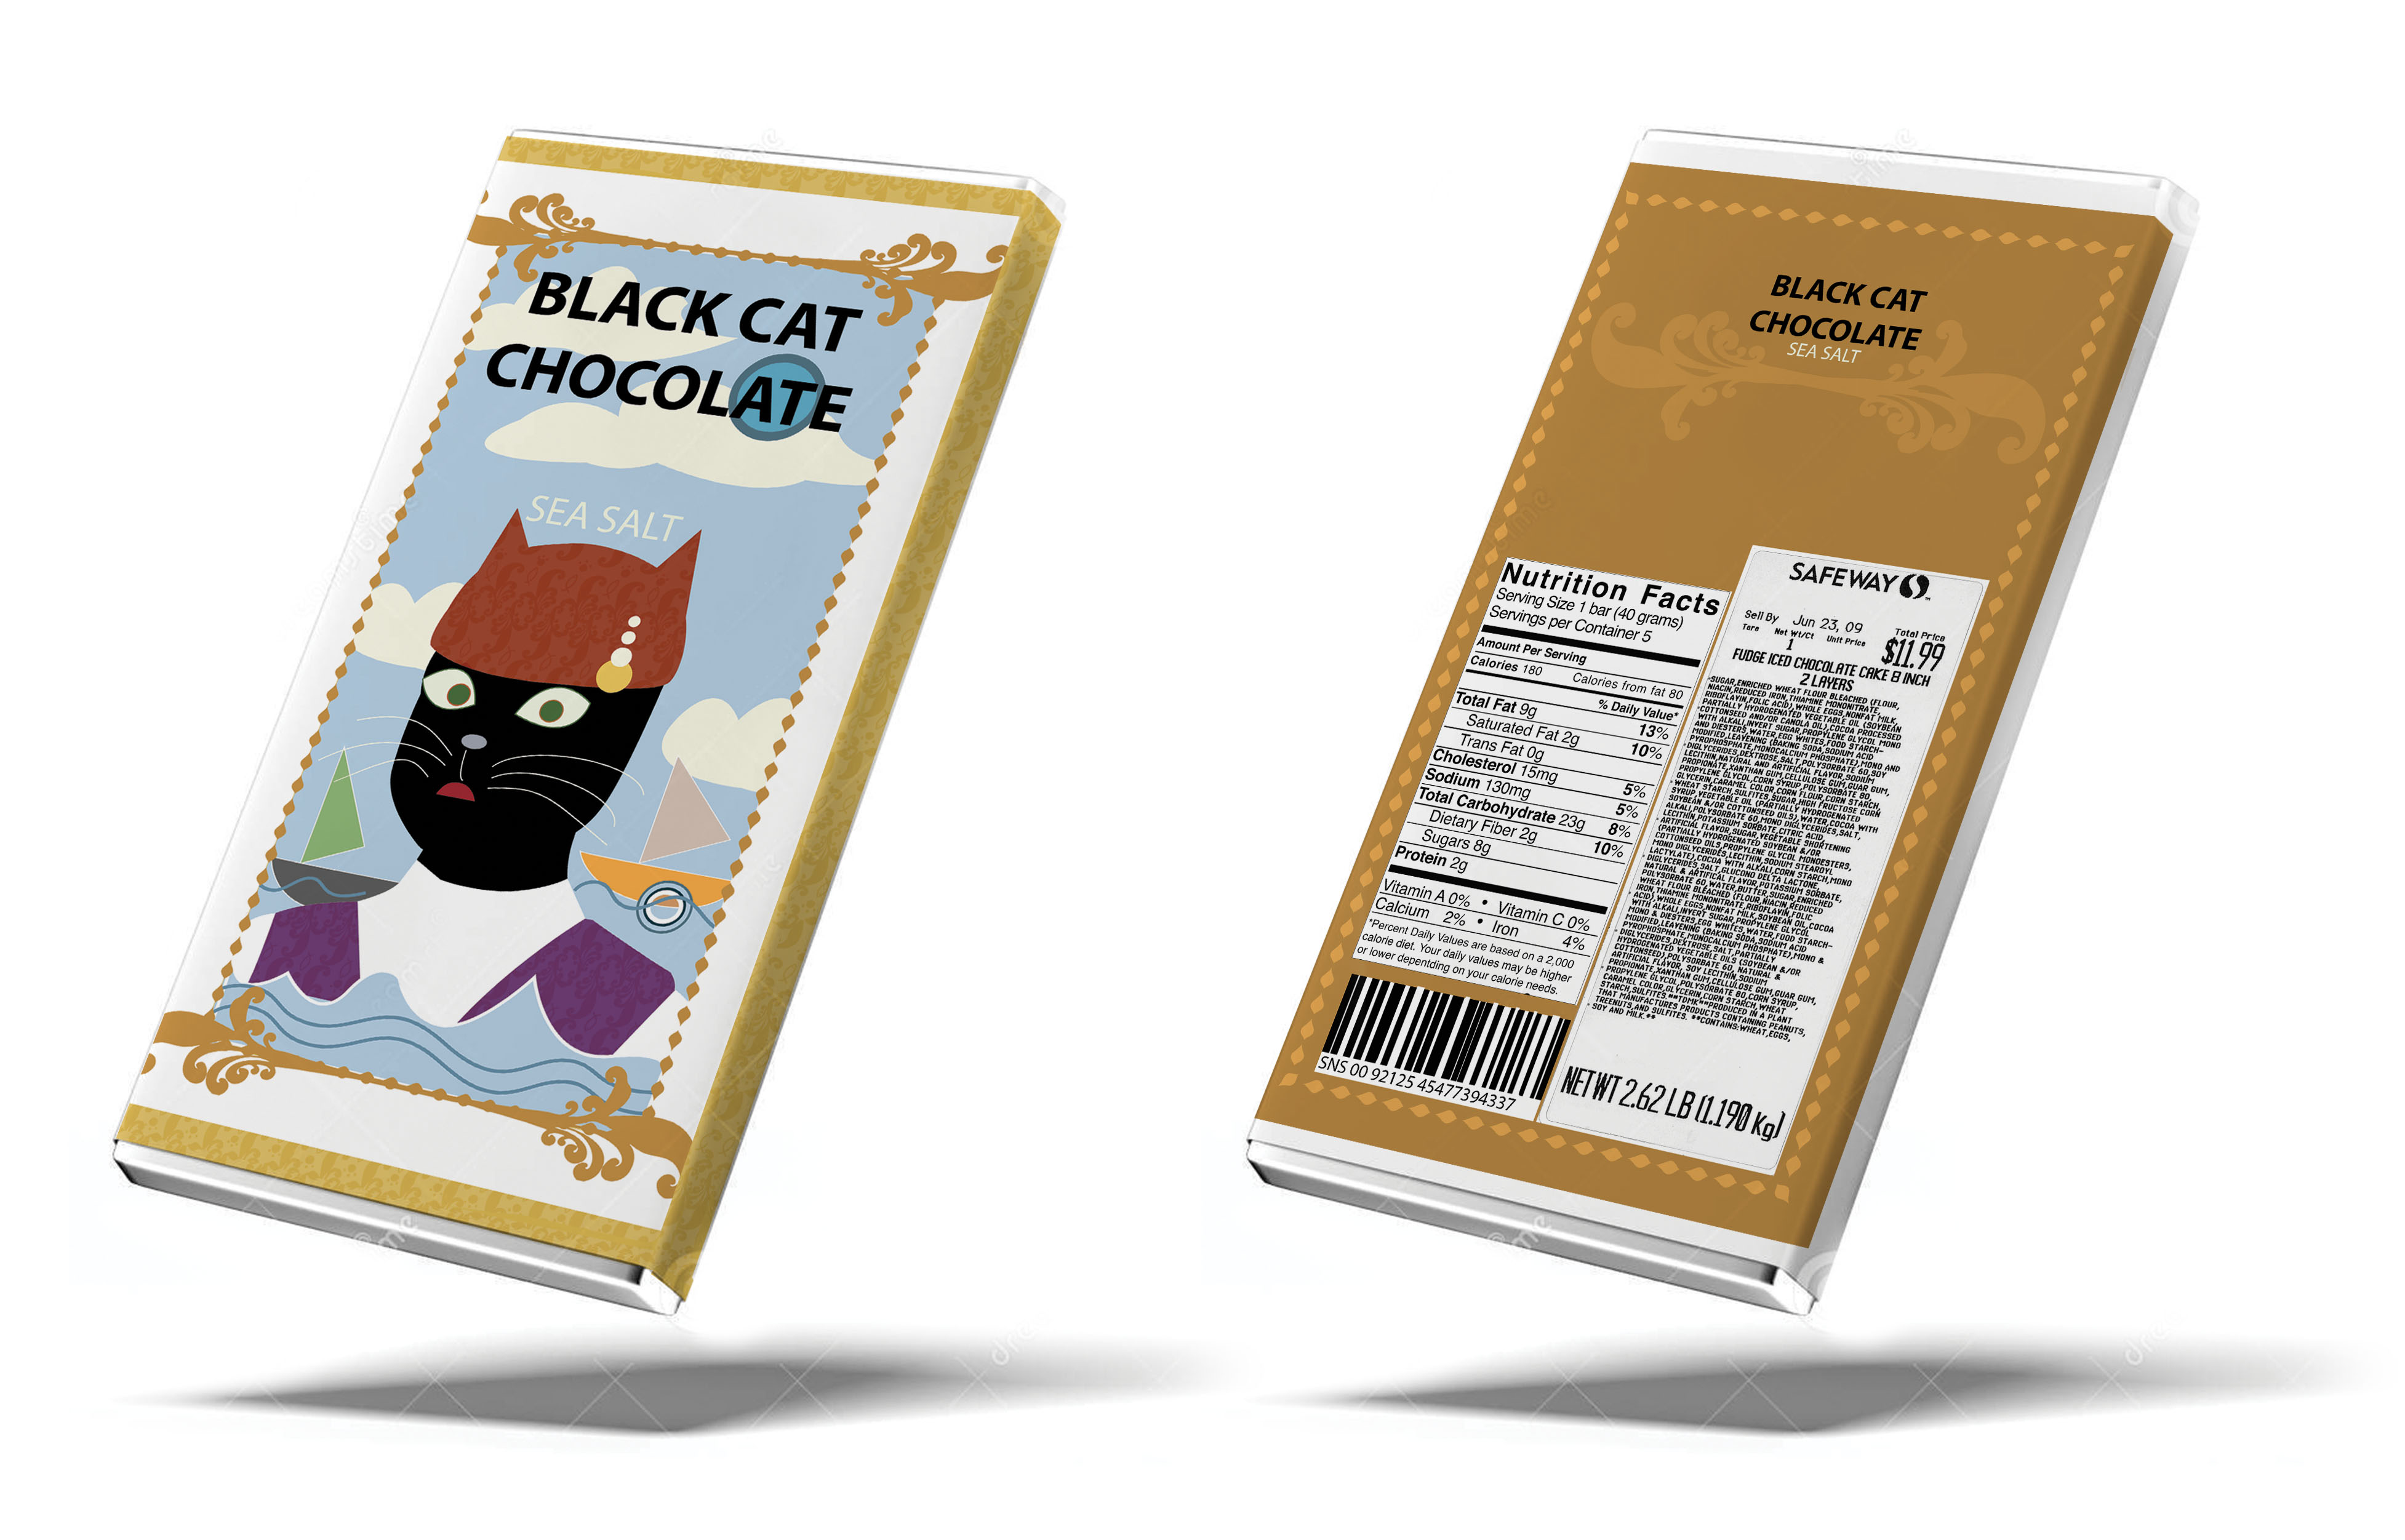 Black Cat Pakage design